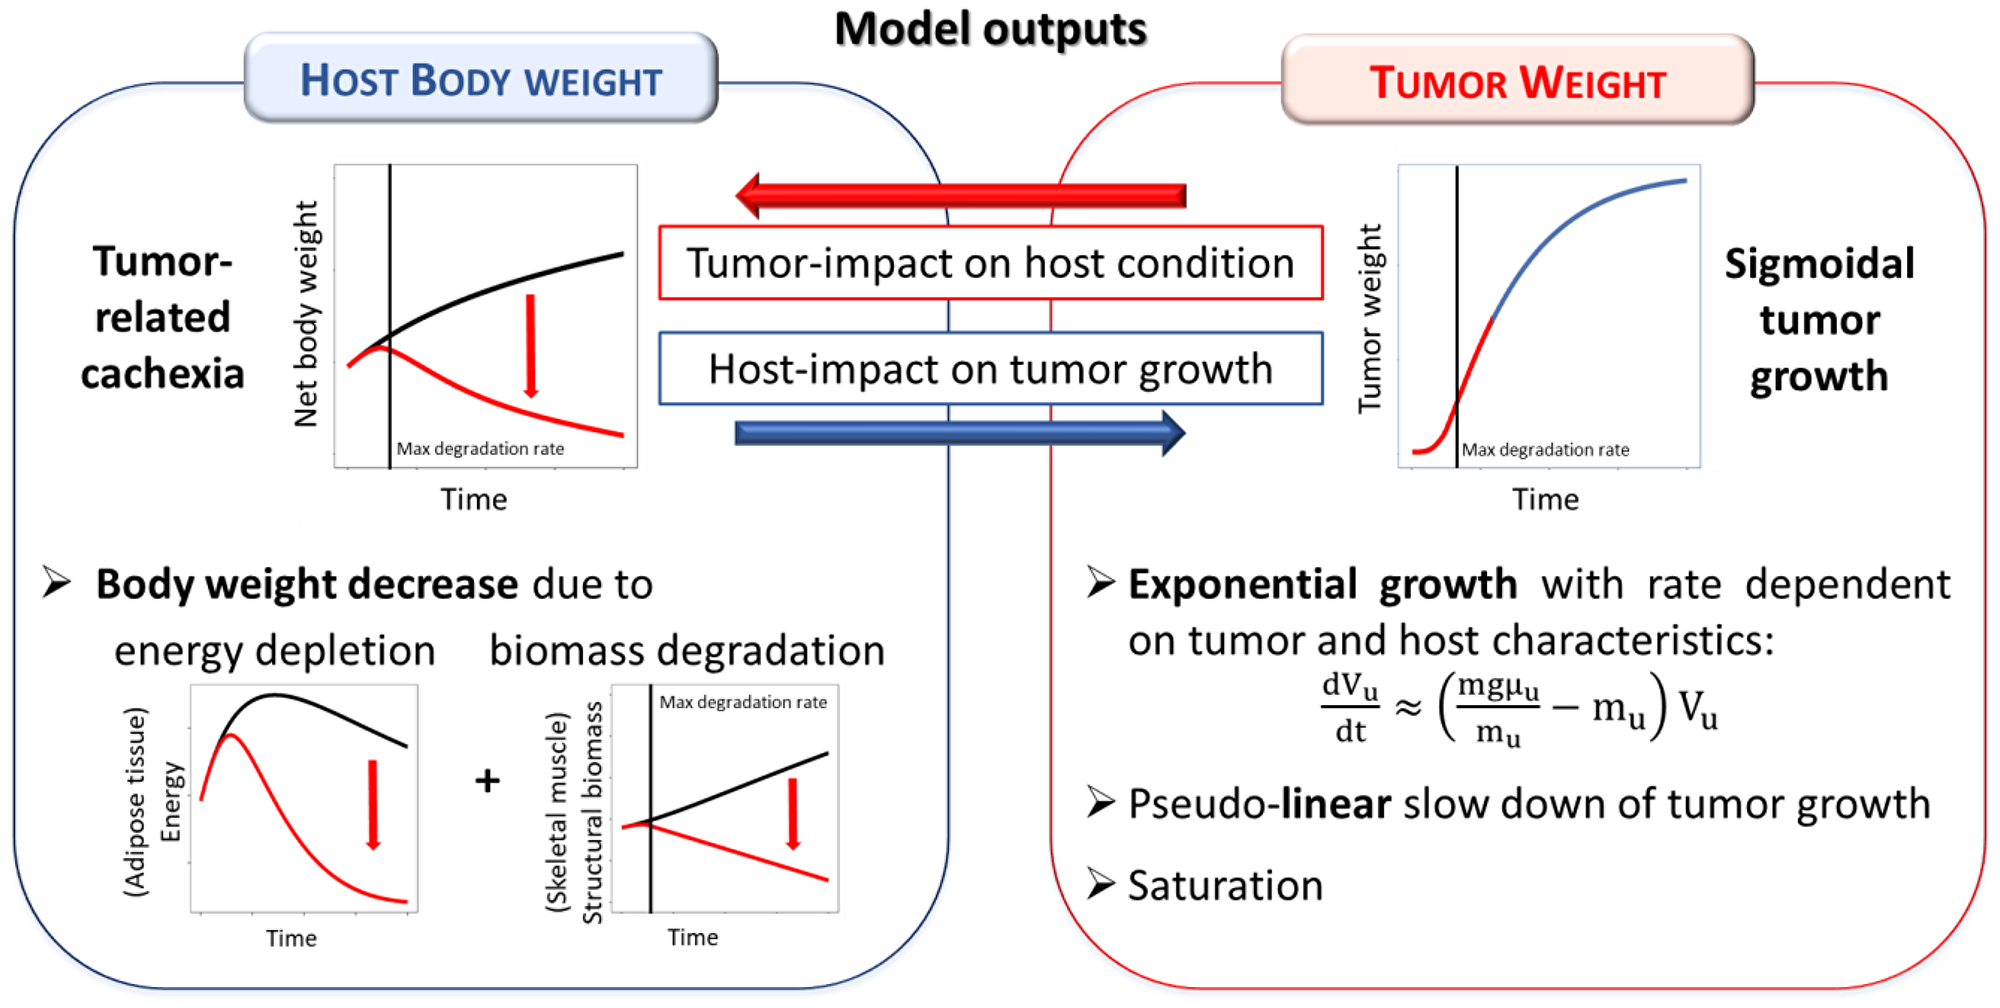 Summary of the tumor-in-host interactions as modeled in the tumor-in-host DEB-based framework.